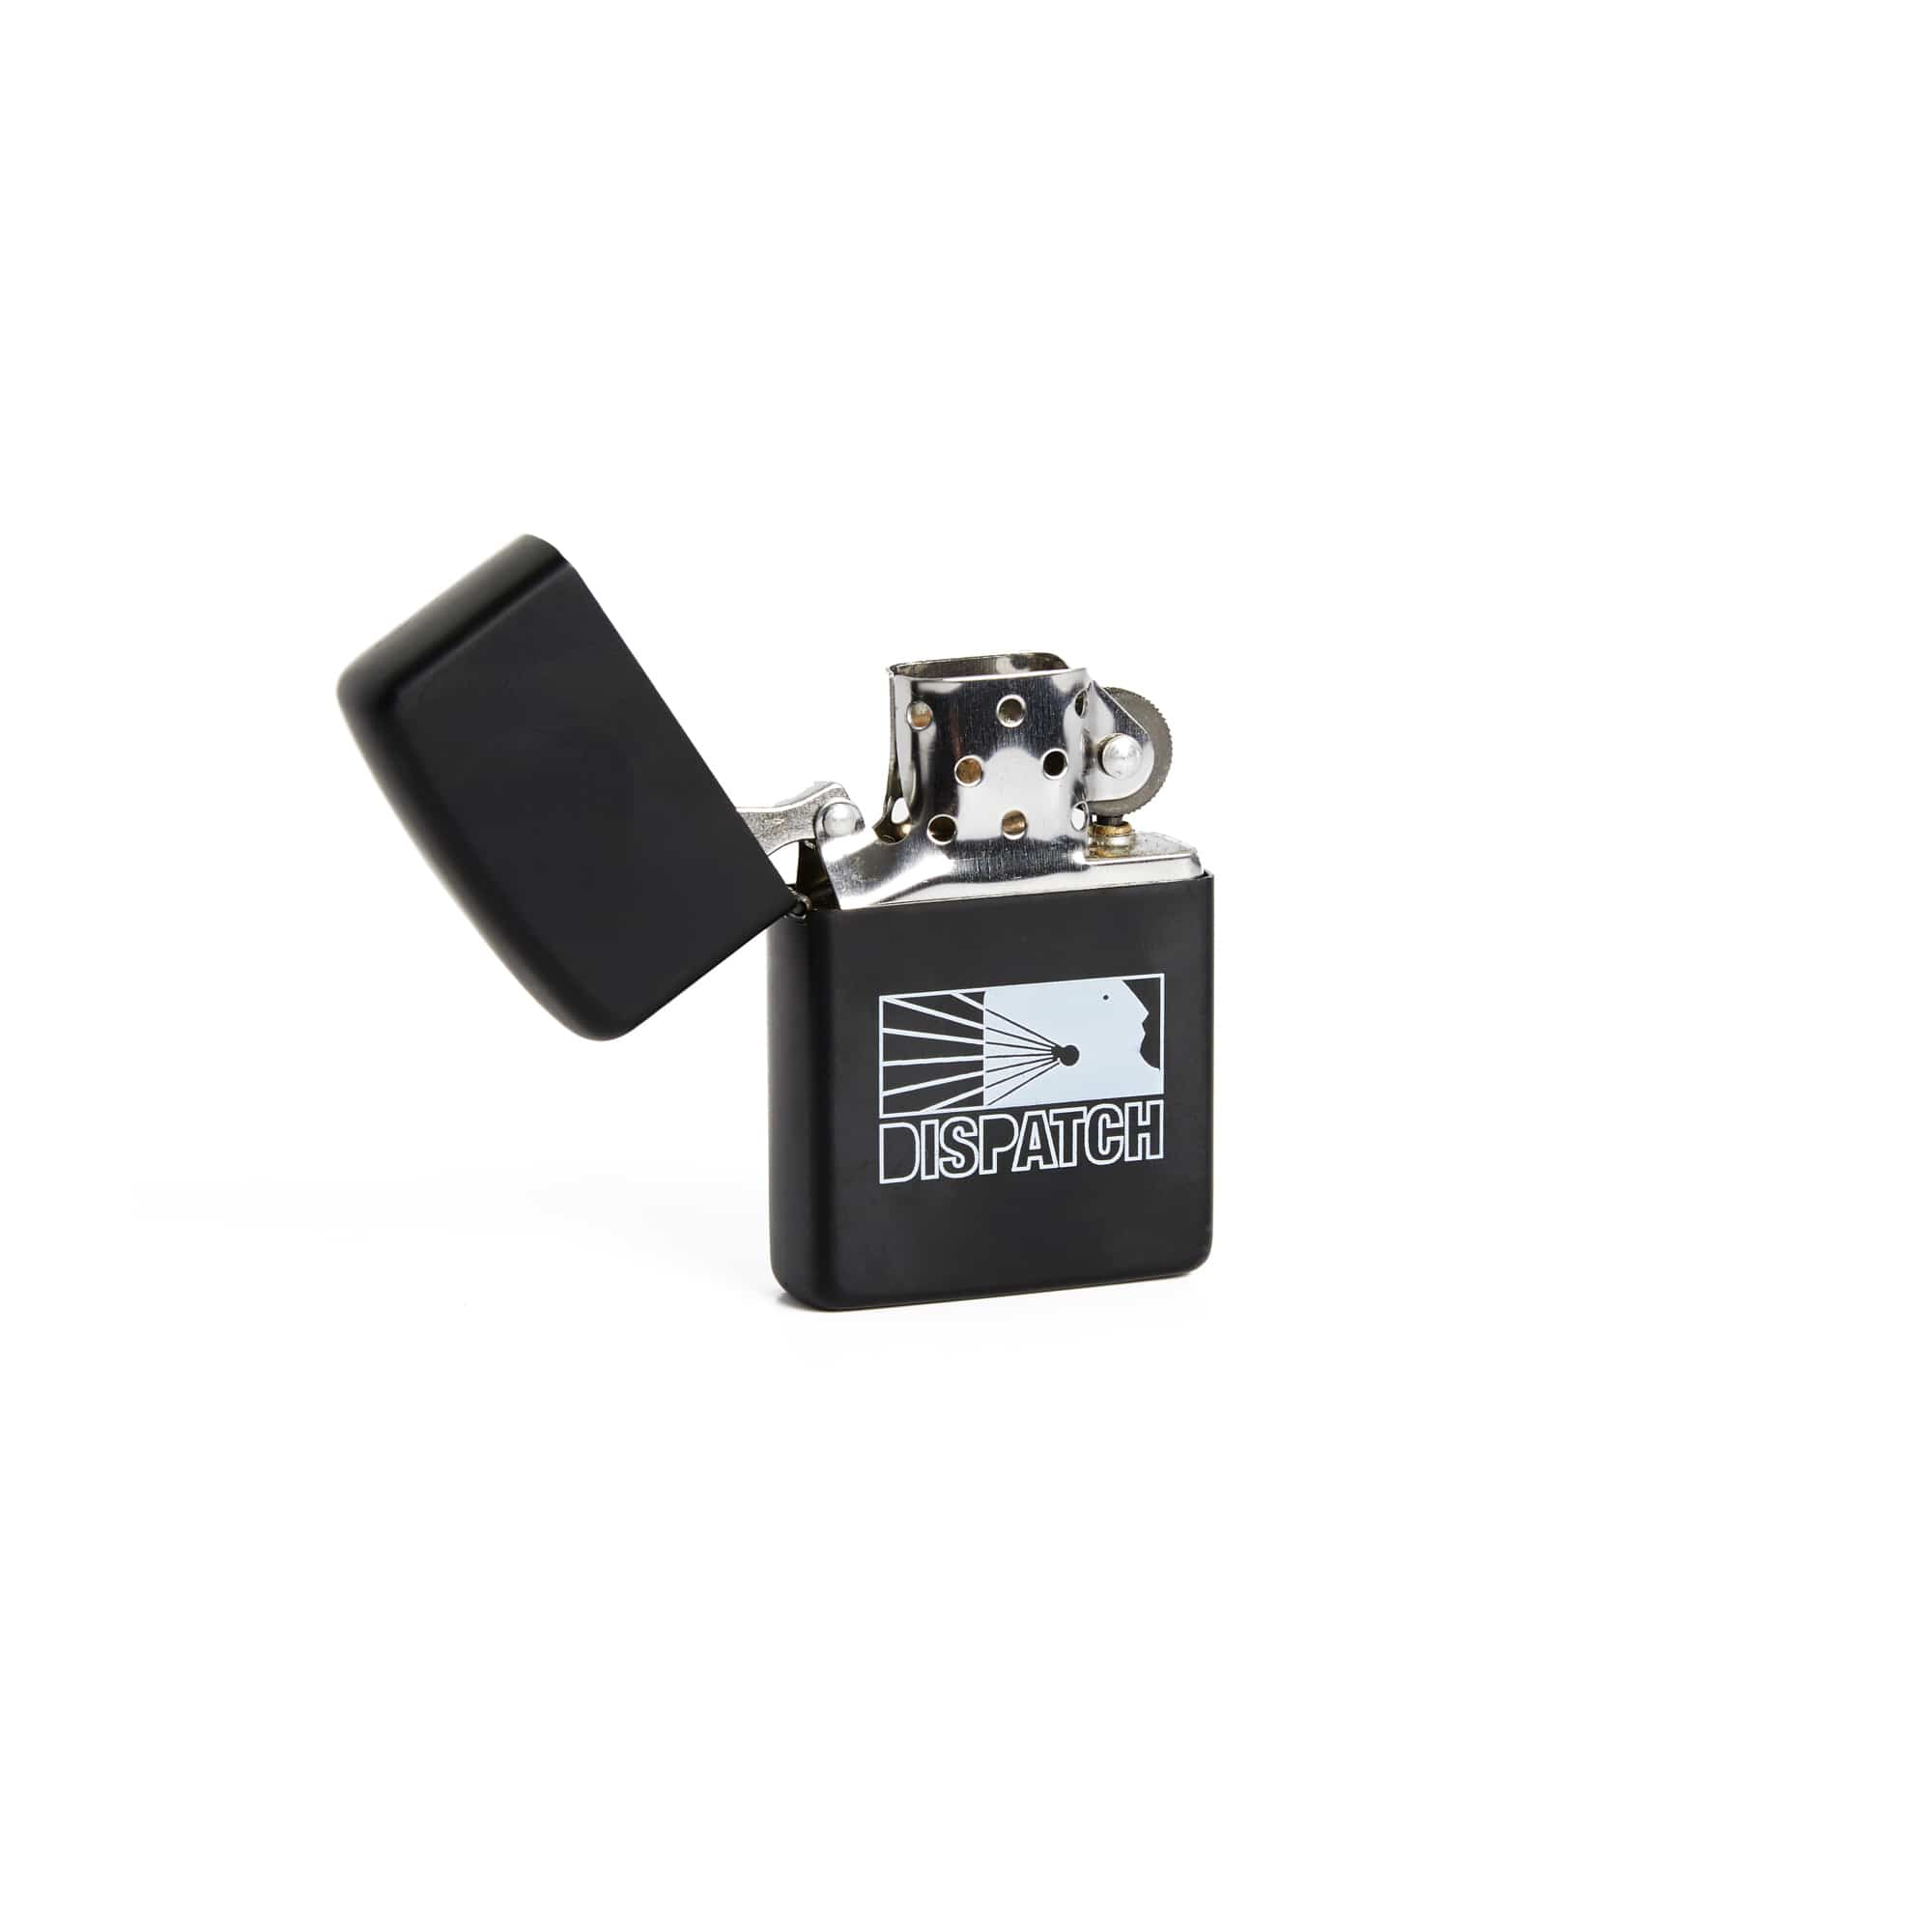 Dispatch Windproof Lighter